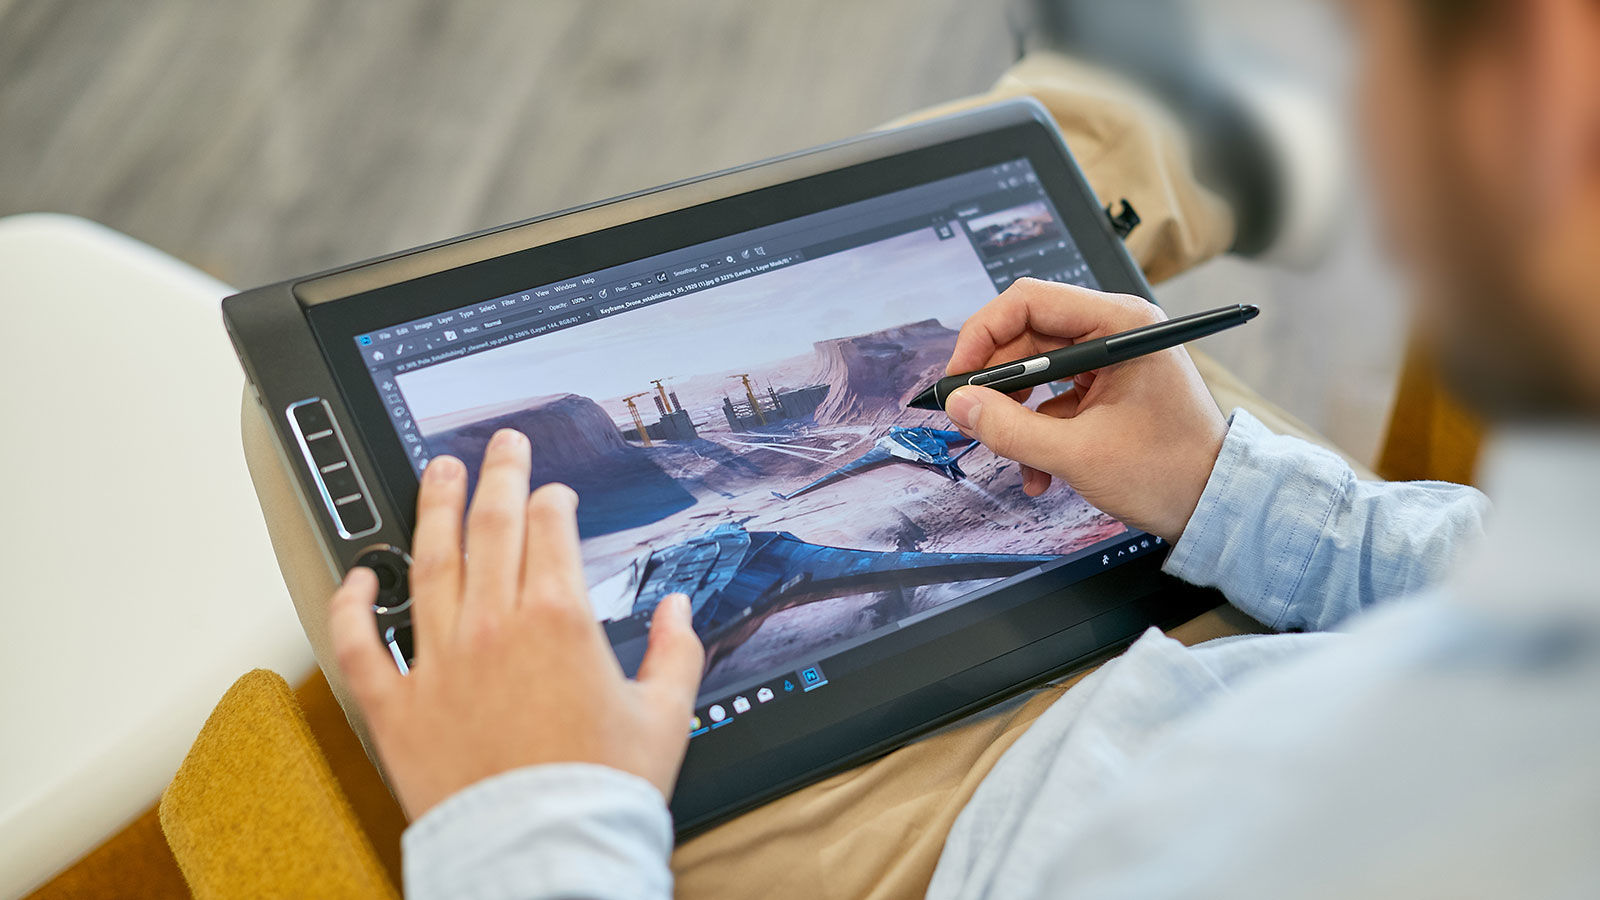 Wacom MobileStudio Pro 16: specs, price and release date for